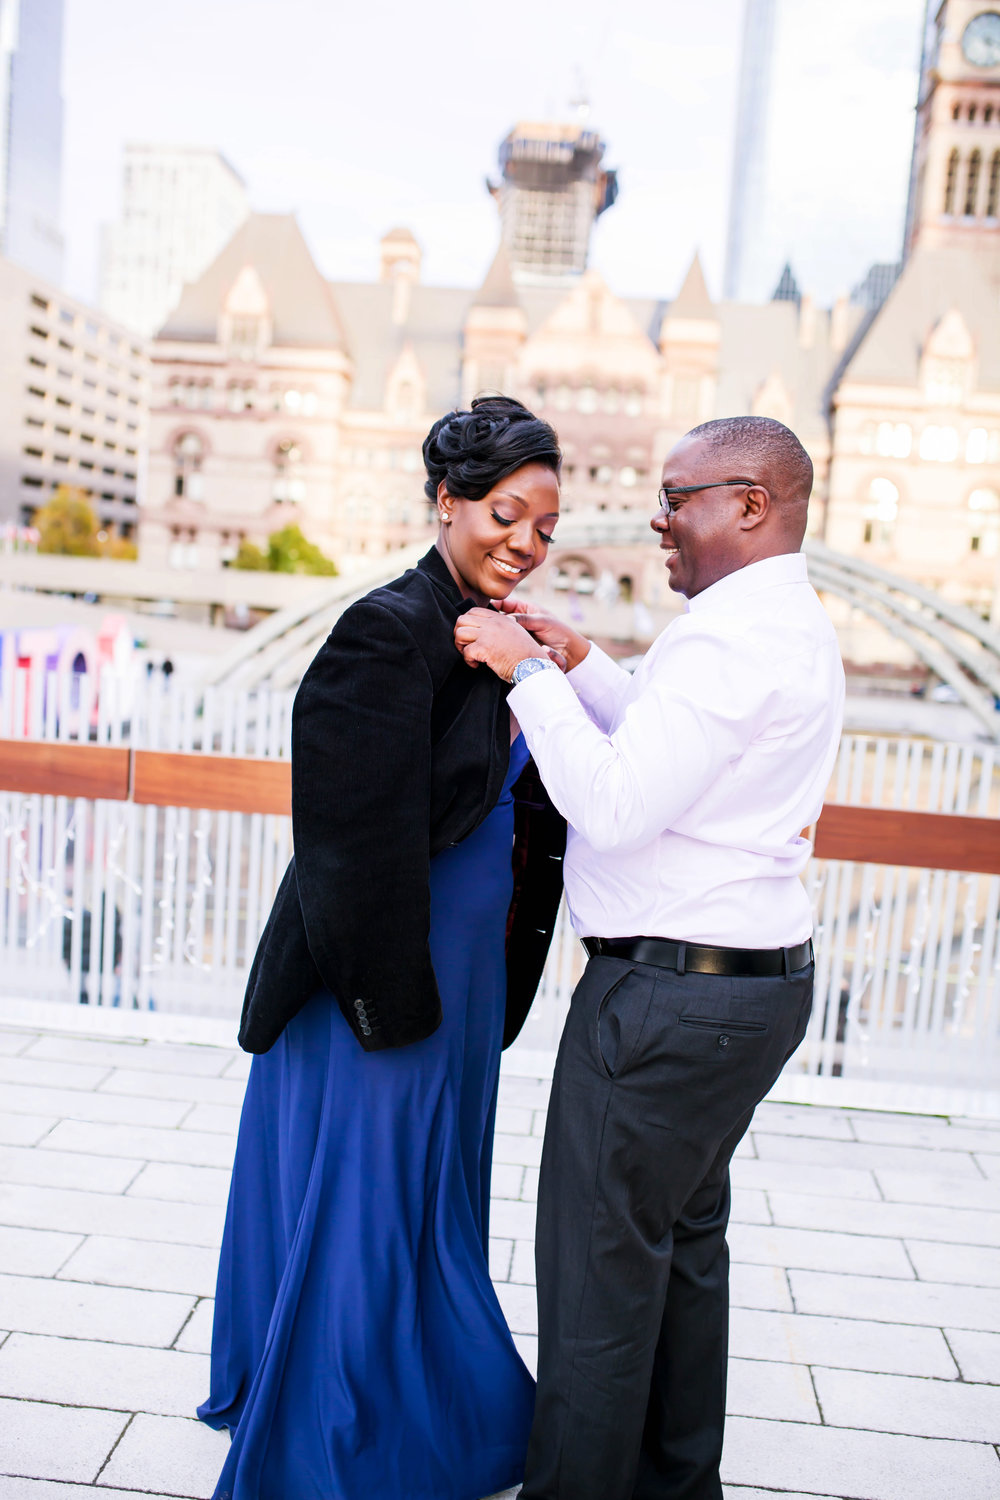 African Canadian Kenyan Engagement Shoot Nathan Phillips square Toronto sign Old City Hall Engagement Photography Toronto Kenyan Kenya Osgoode Hall Toronto Downtown location Photographer Elegant photo ideas Ontario Canada African Black Couple Best Photographer Karimah Gheddai Photography Futuristic Architecture